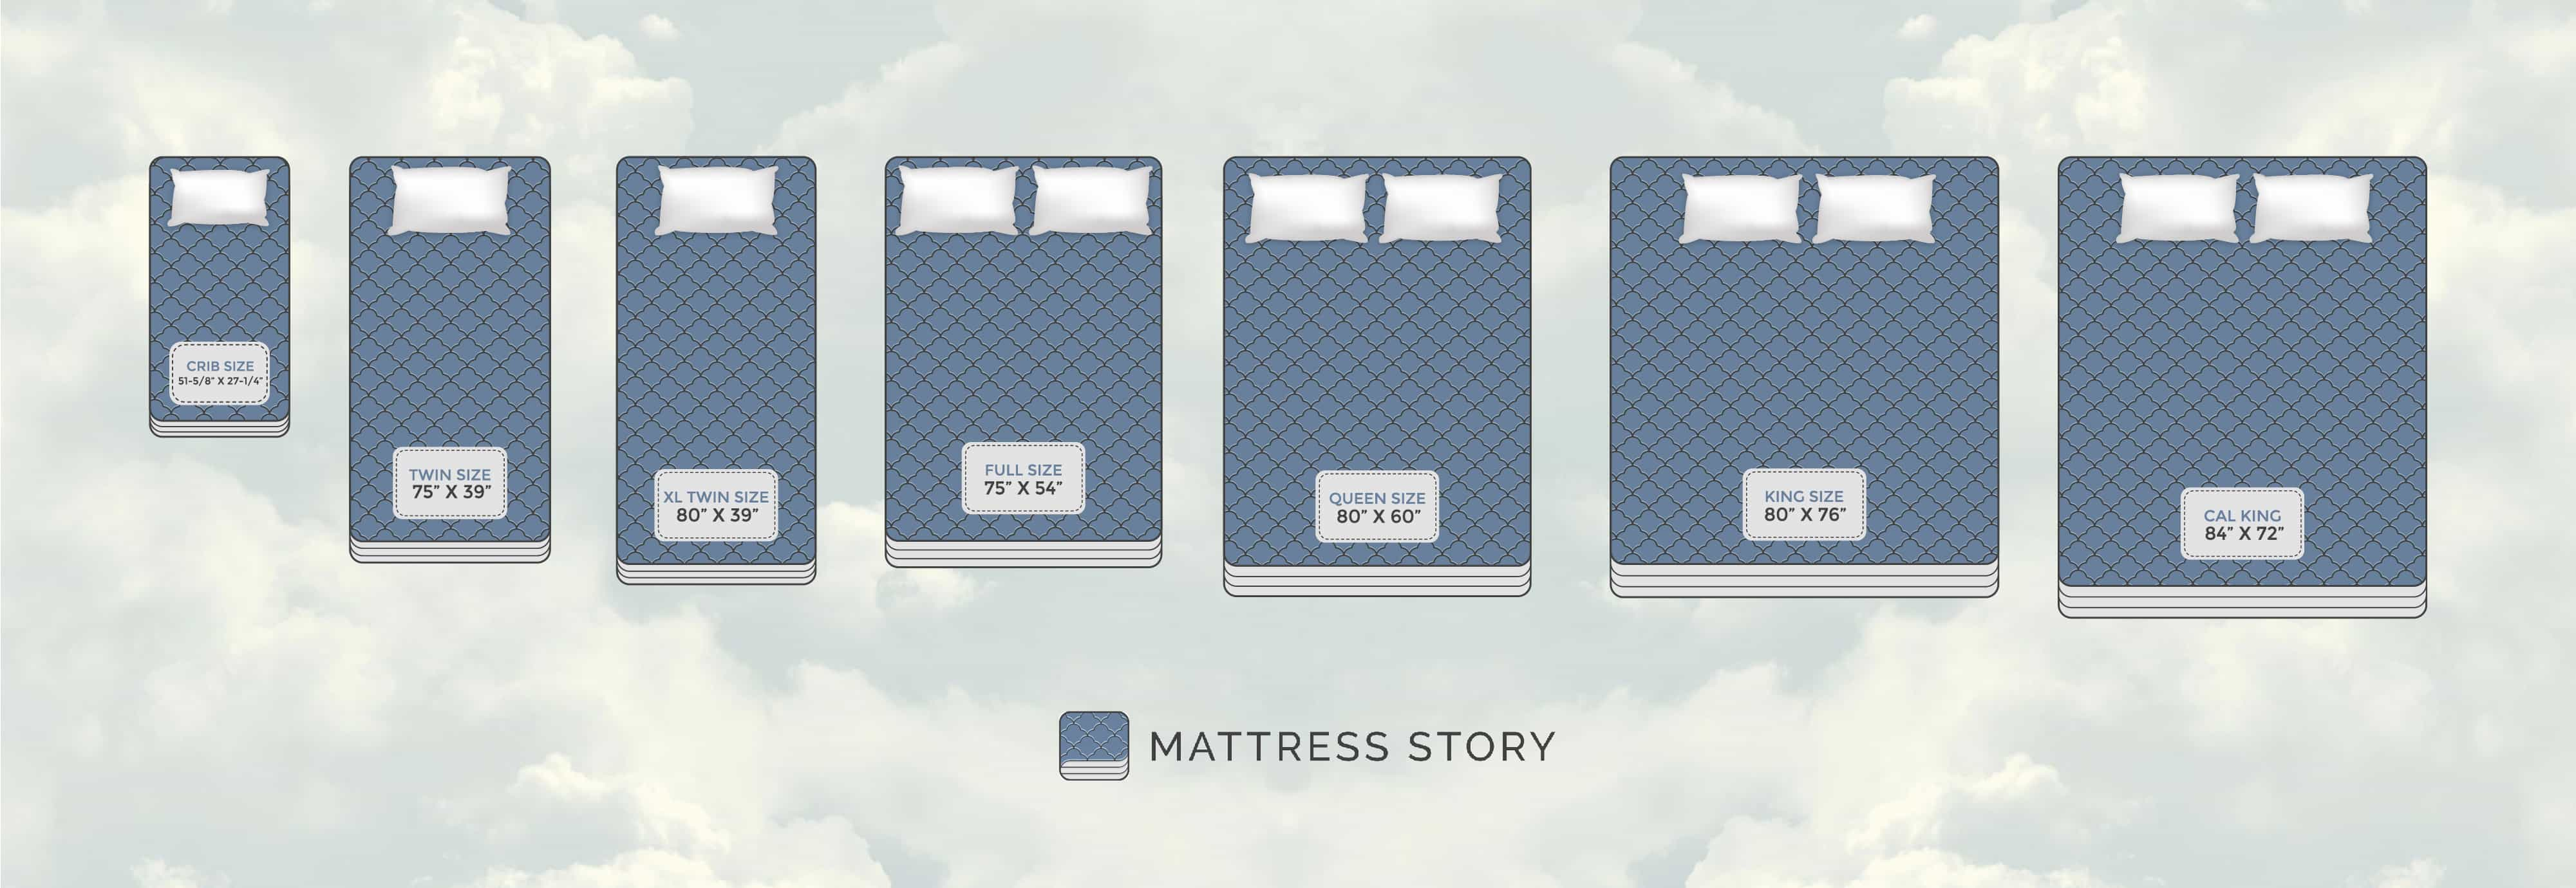 of a beautiful twin awesome dimensions ais mattress super fran chart sizes meubles